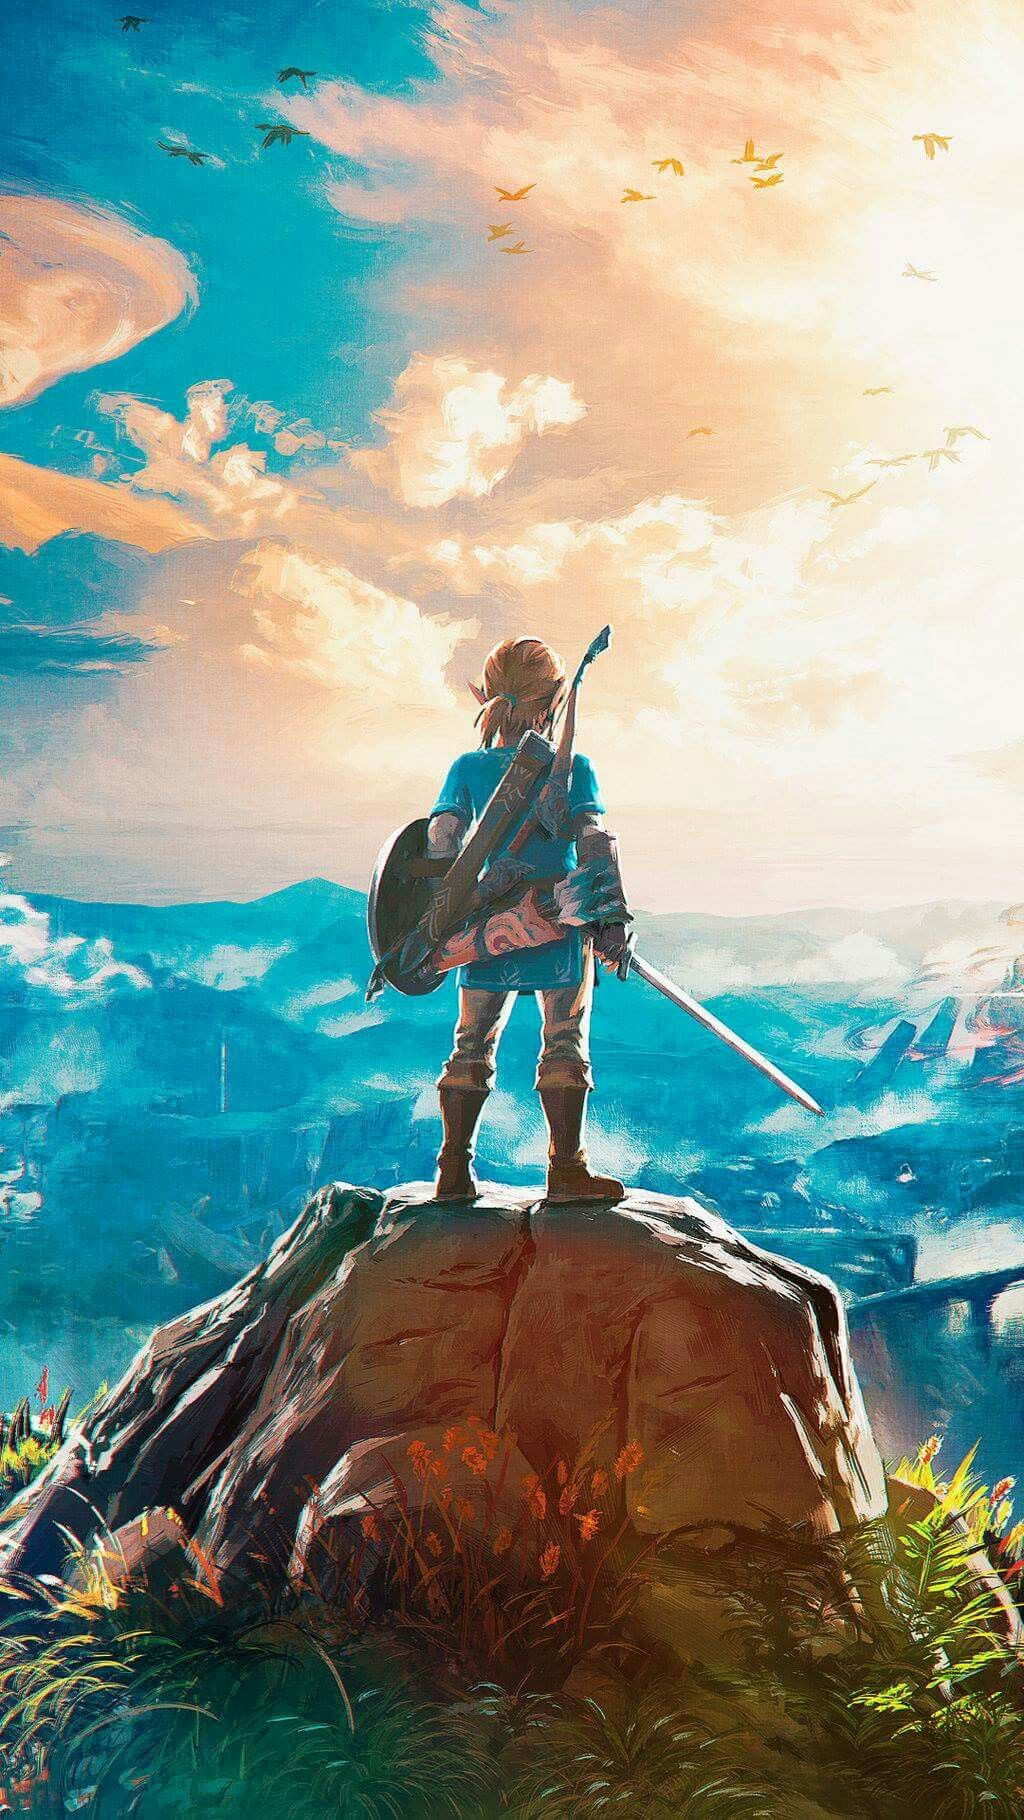 The Legend Of Zelda Breath Of The Wild Mobile Wallpaper Fictional